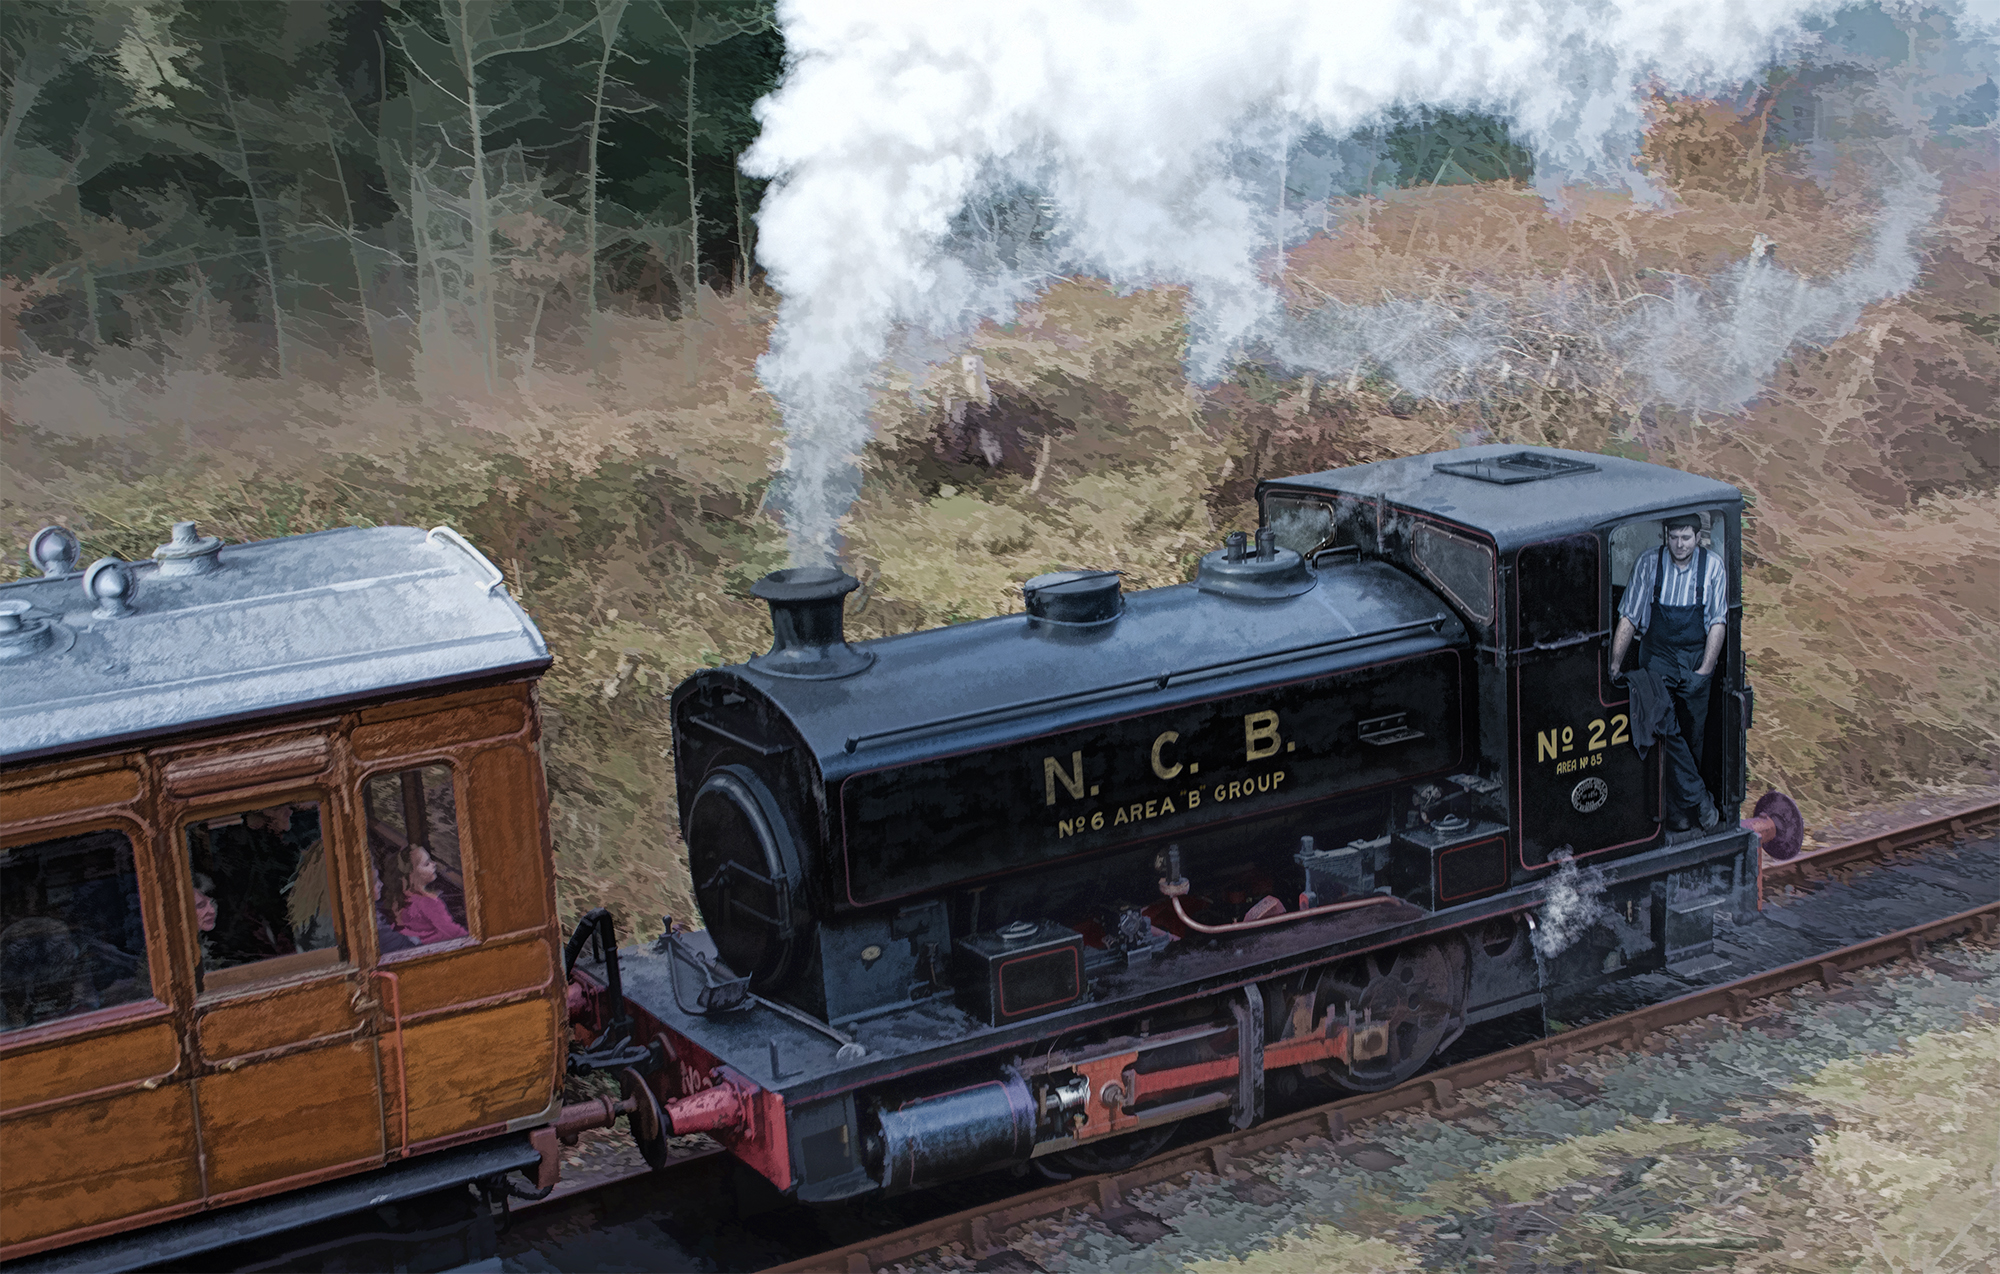 File:Andrew Barclay tank locomotive No. 2274, Beamish Museum, 30 March 2013